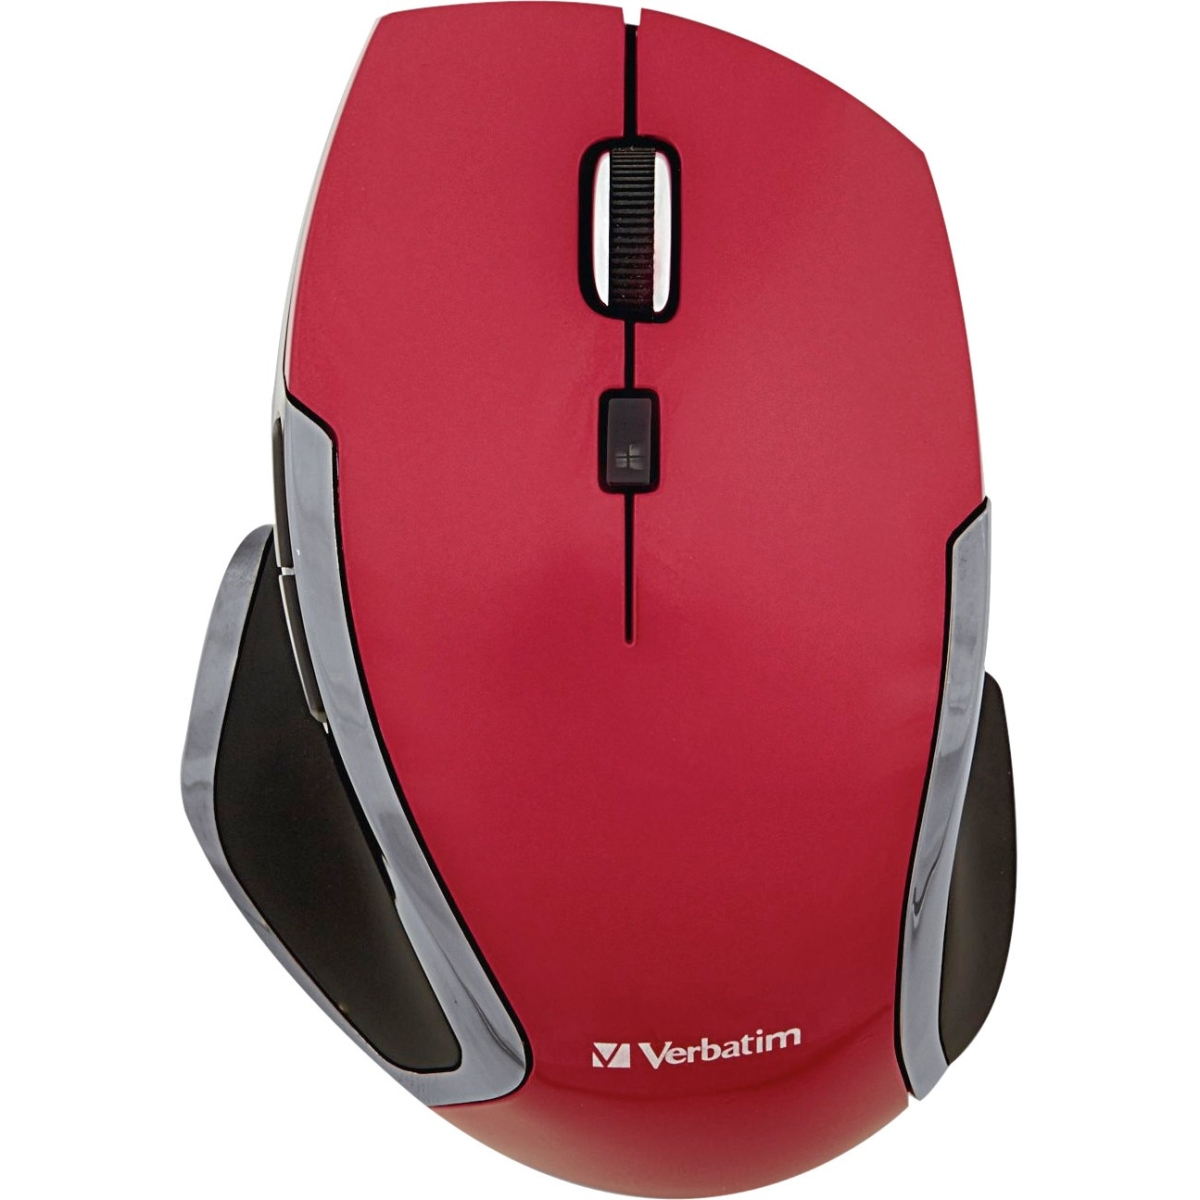 Deluxe - Mouse - 6 buttons - wireless - 2.4 GHz - USB wireless receiver - red